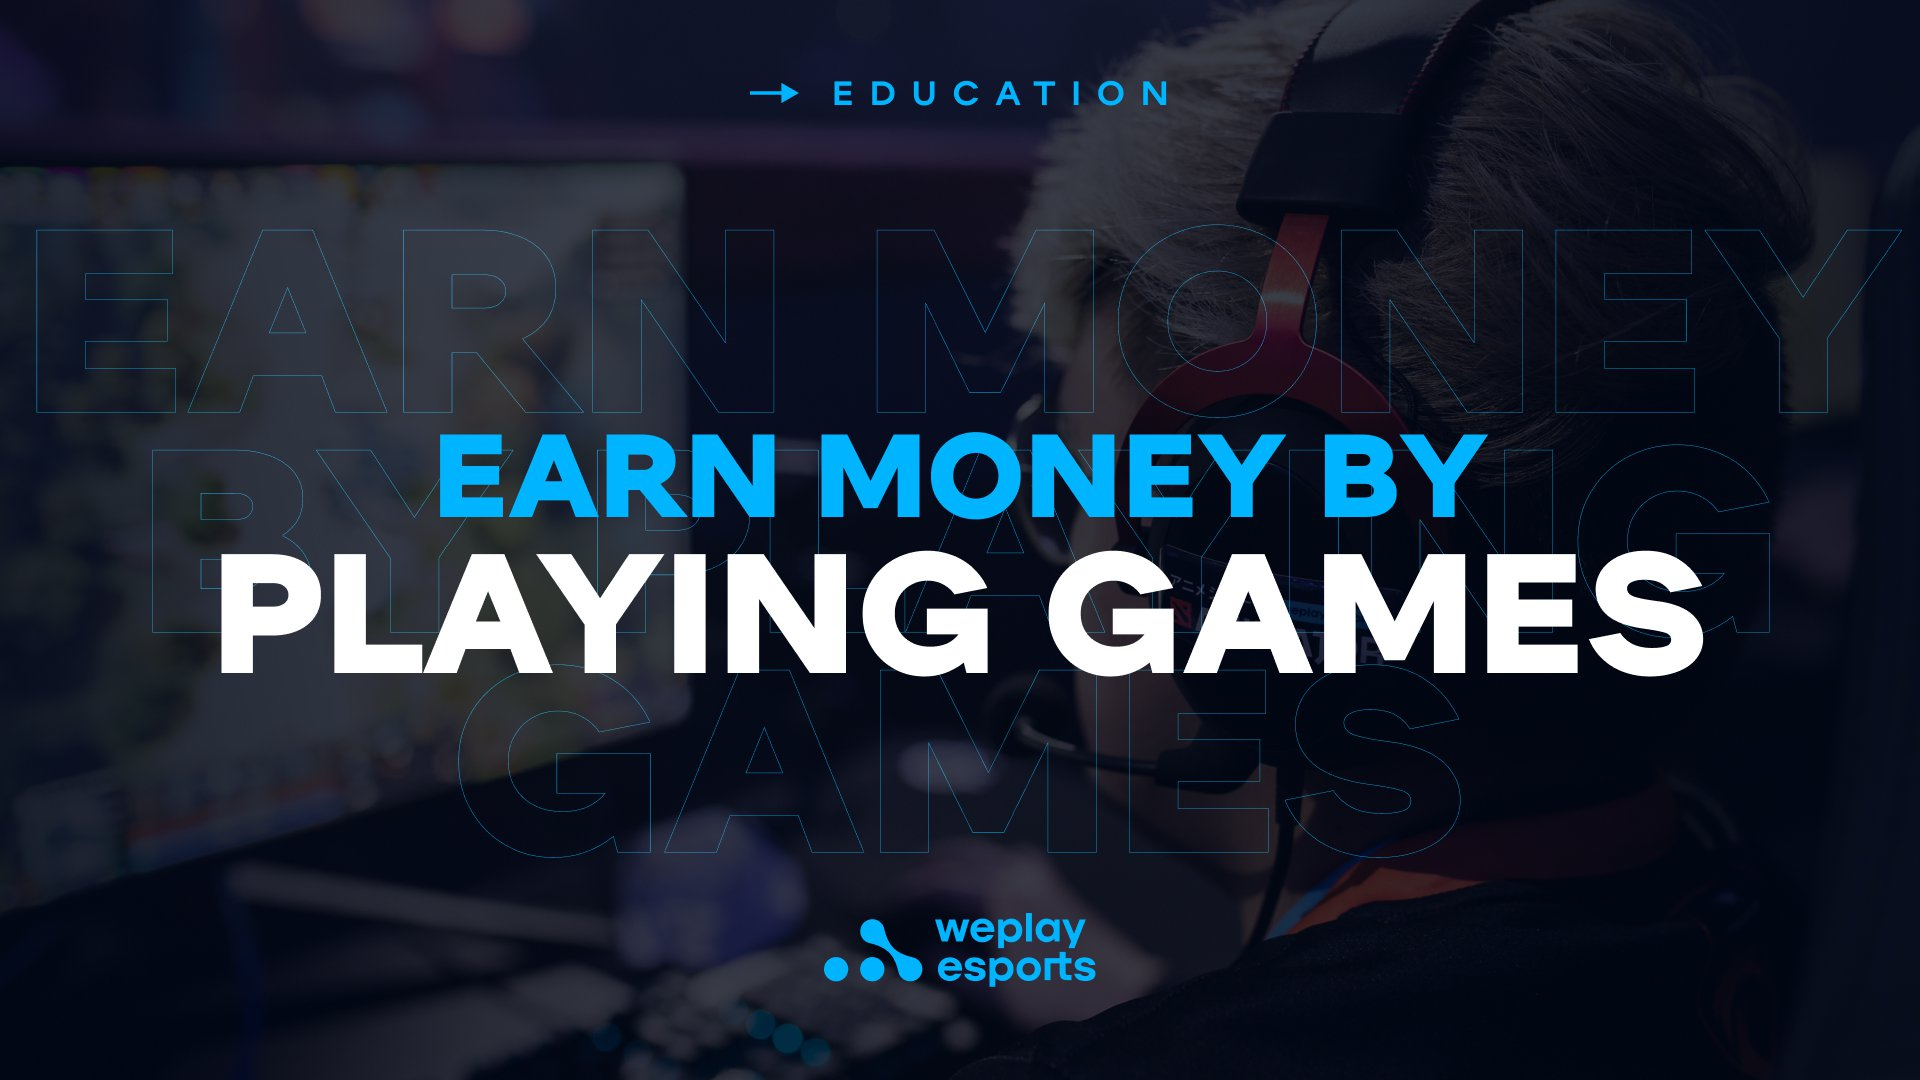 Earn Money by Playing Games. Image: WePlay Holding